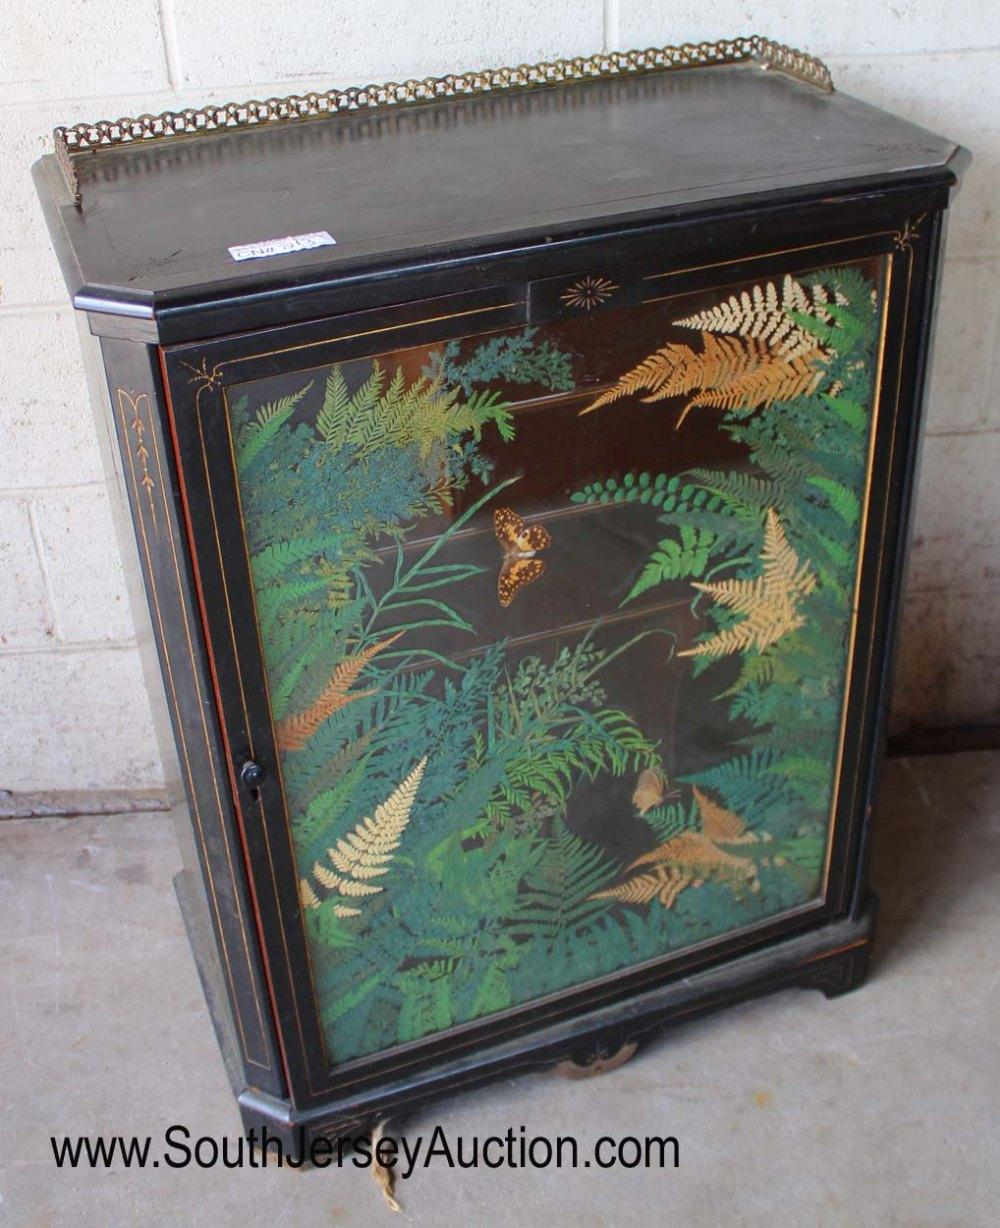 Black Ebonized Asian Inspired Music Cabinet with Brass Gallery